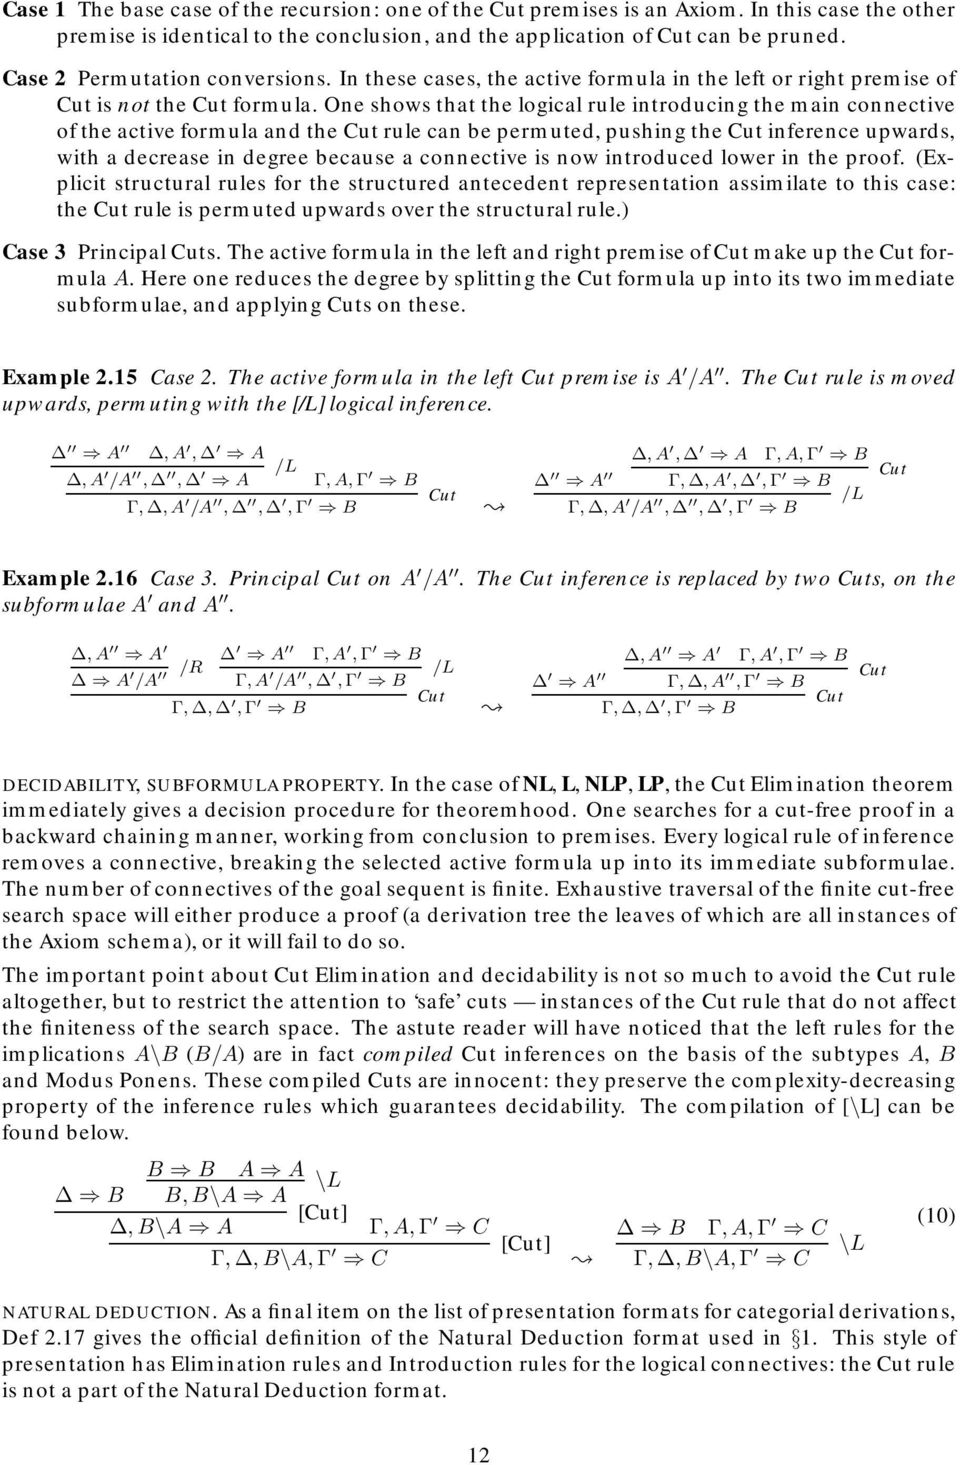 One shows that the logical rule introducing the main connective of the active formula and the Cut rule can be permuted, pushing the Cut inference upwards, with a decrease in degree because a